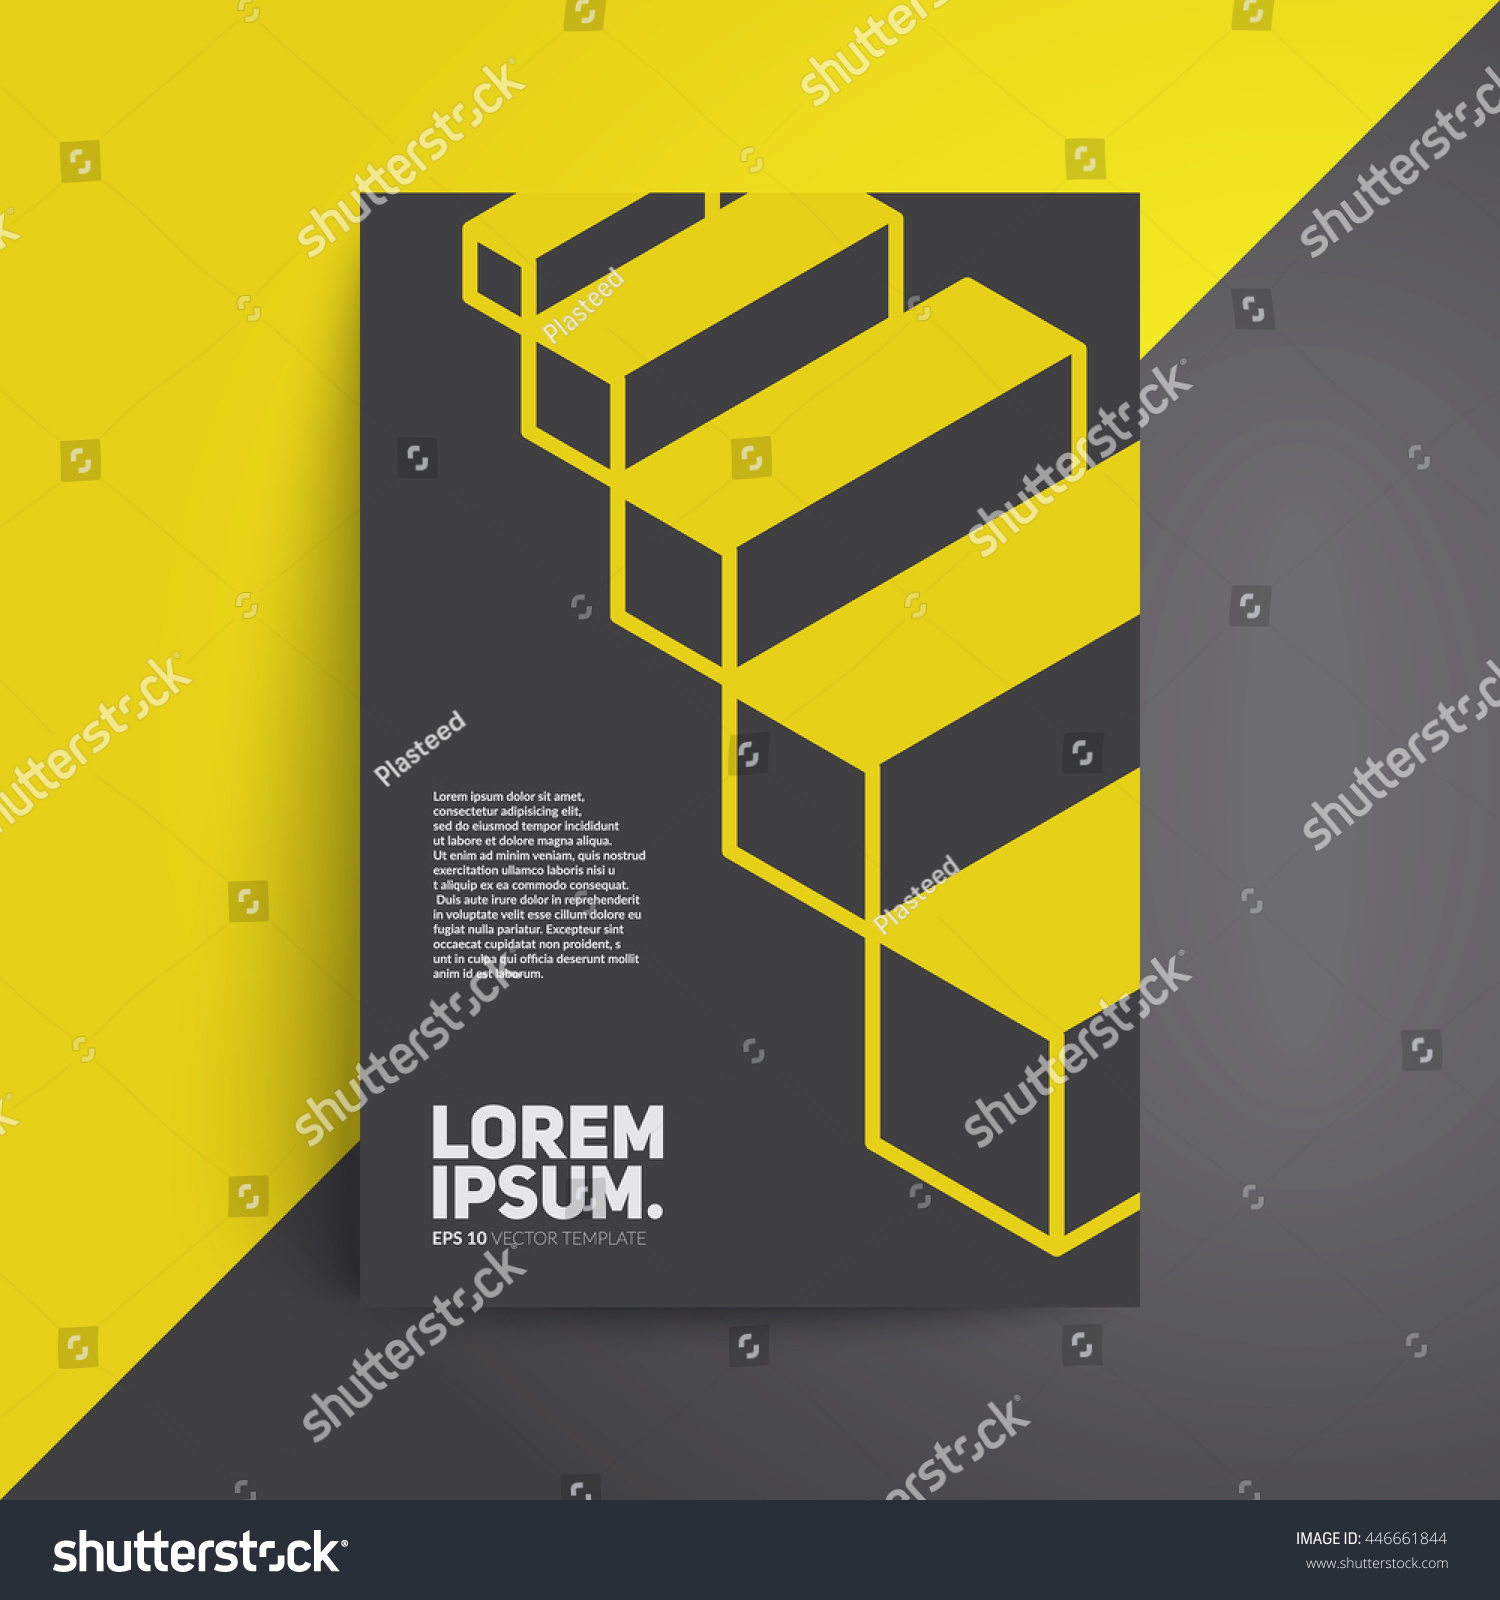 Architecture Book Cover Design : Isometric cover design architecture book vector stock